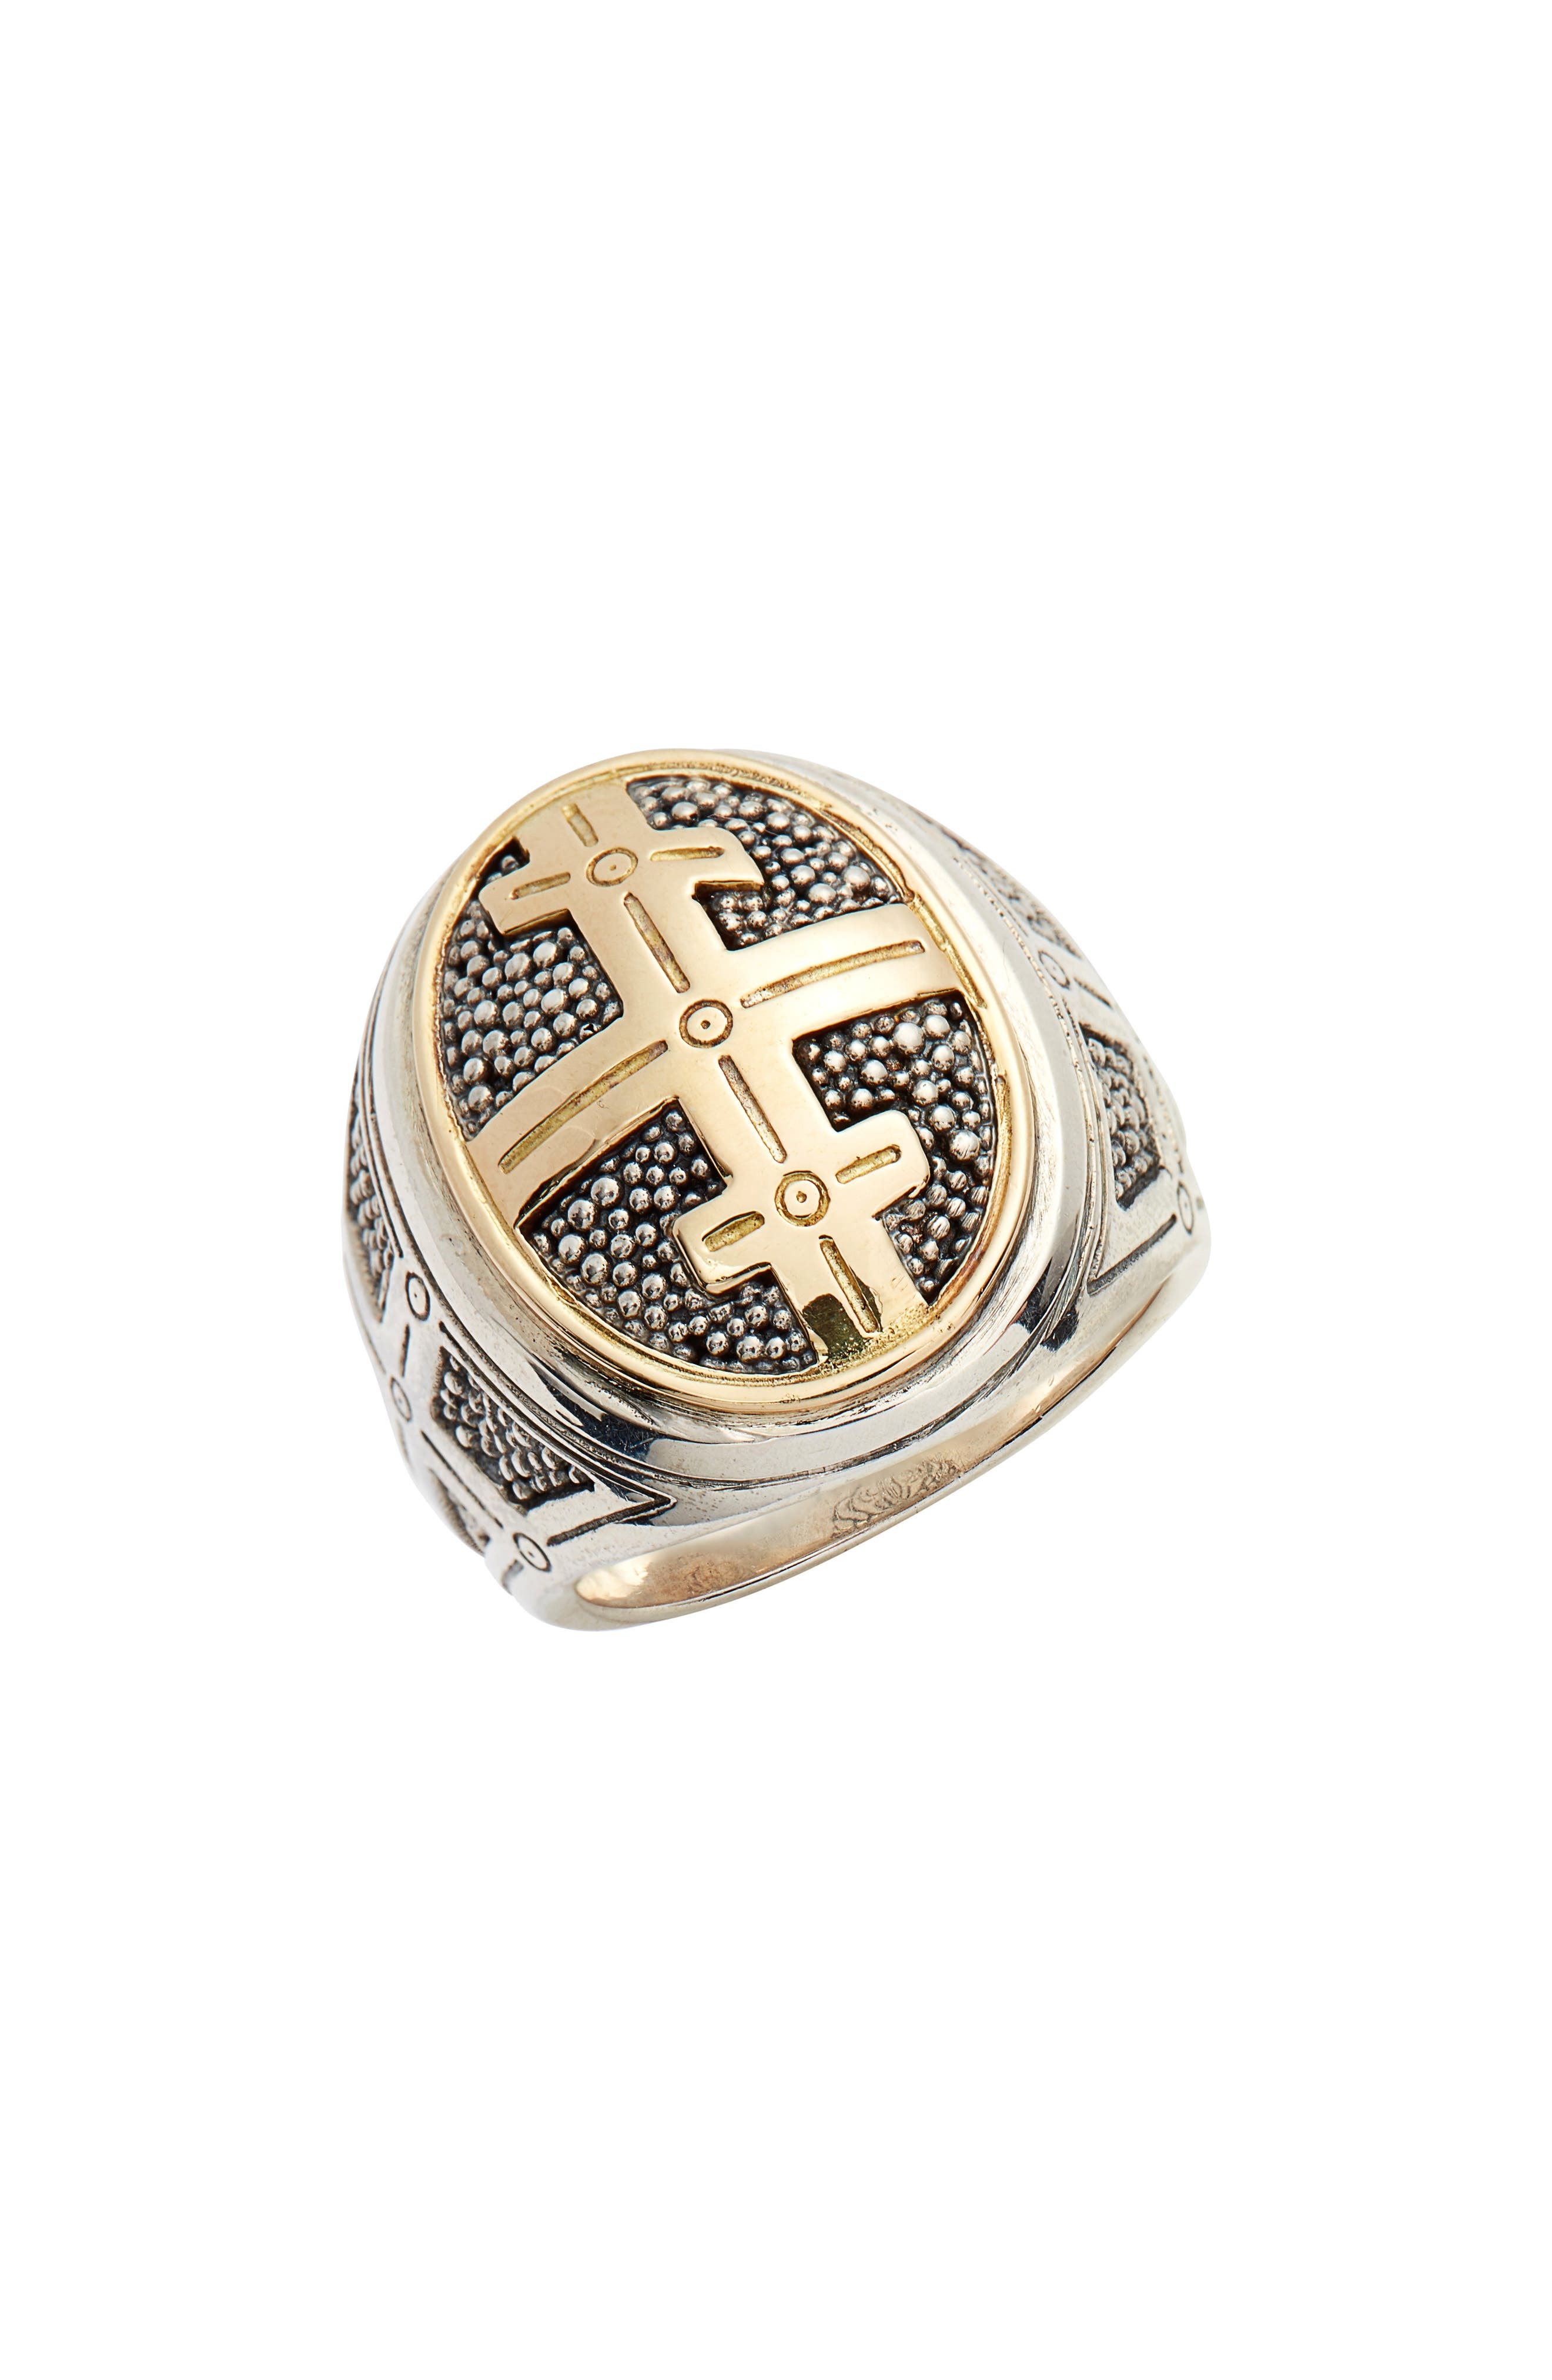 Large Stavros Cross Signet Ring,                             Main thumbnail 1, color,                             SILVER/ GOLD